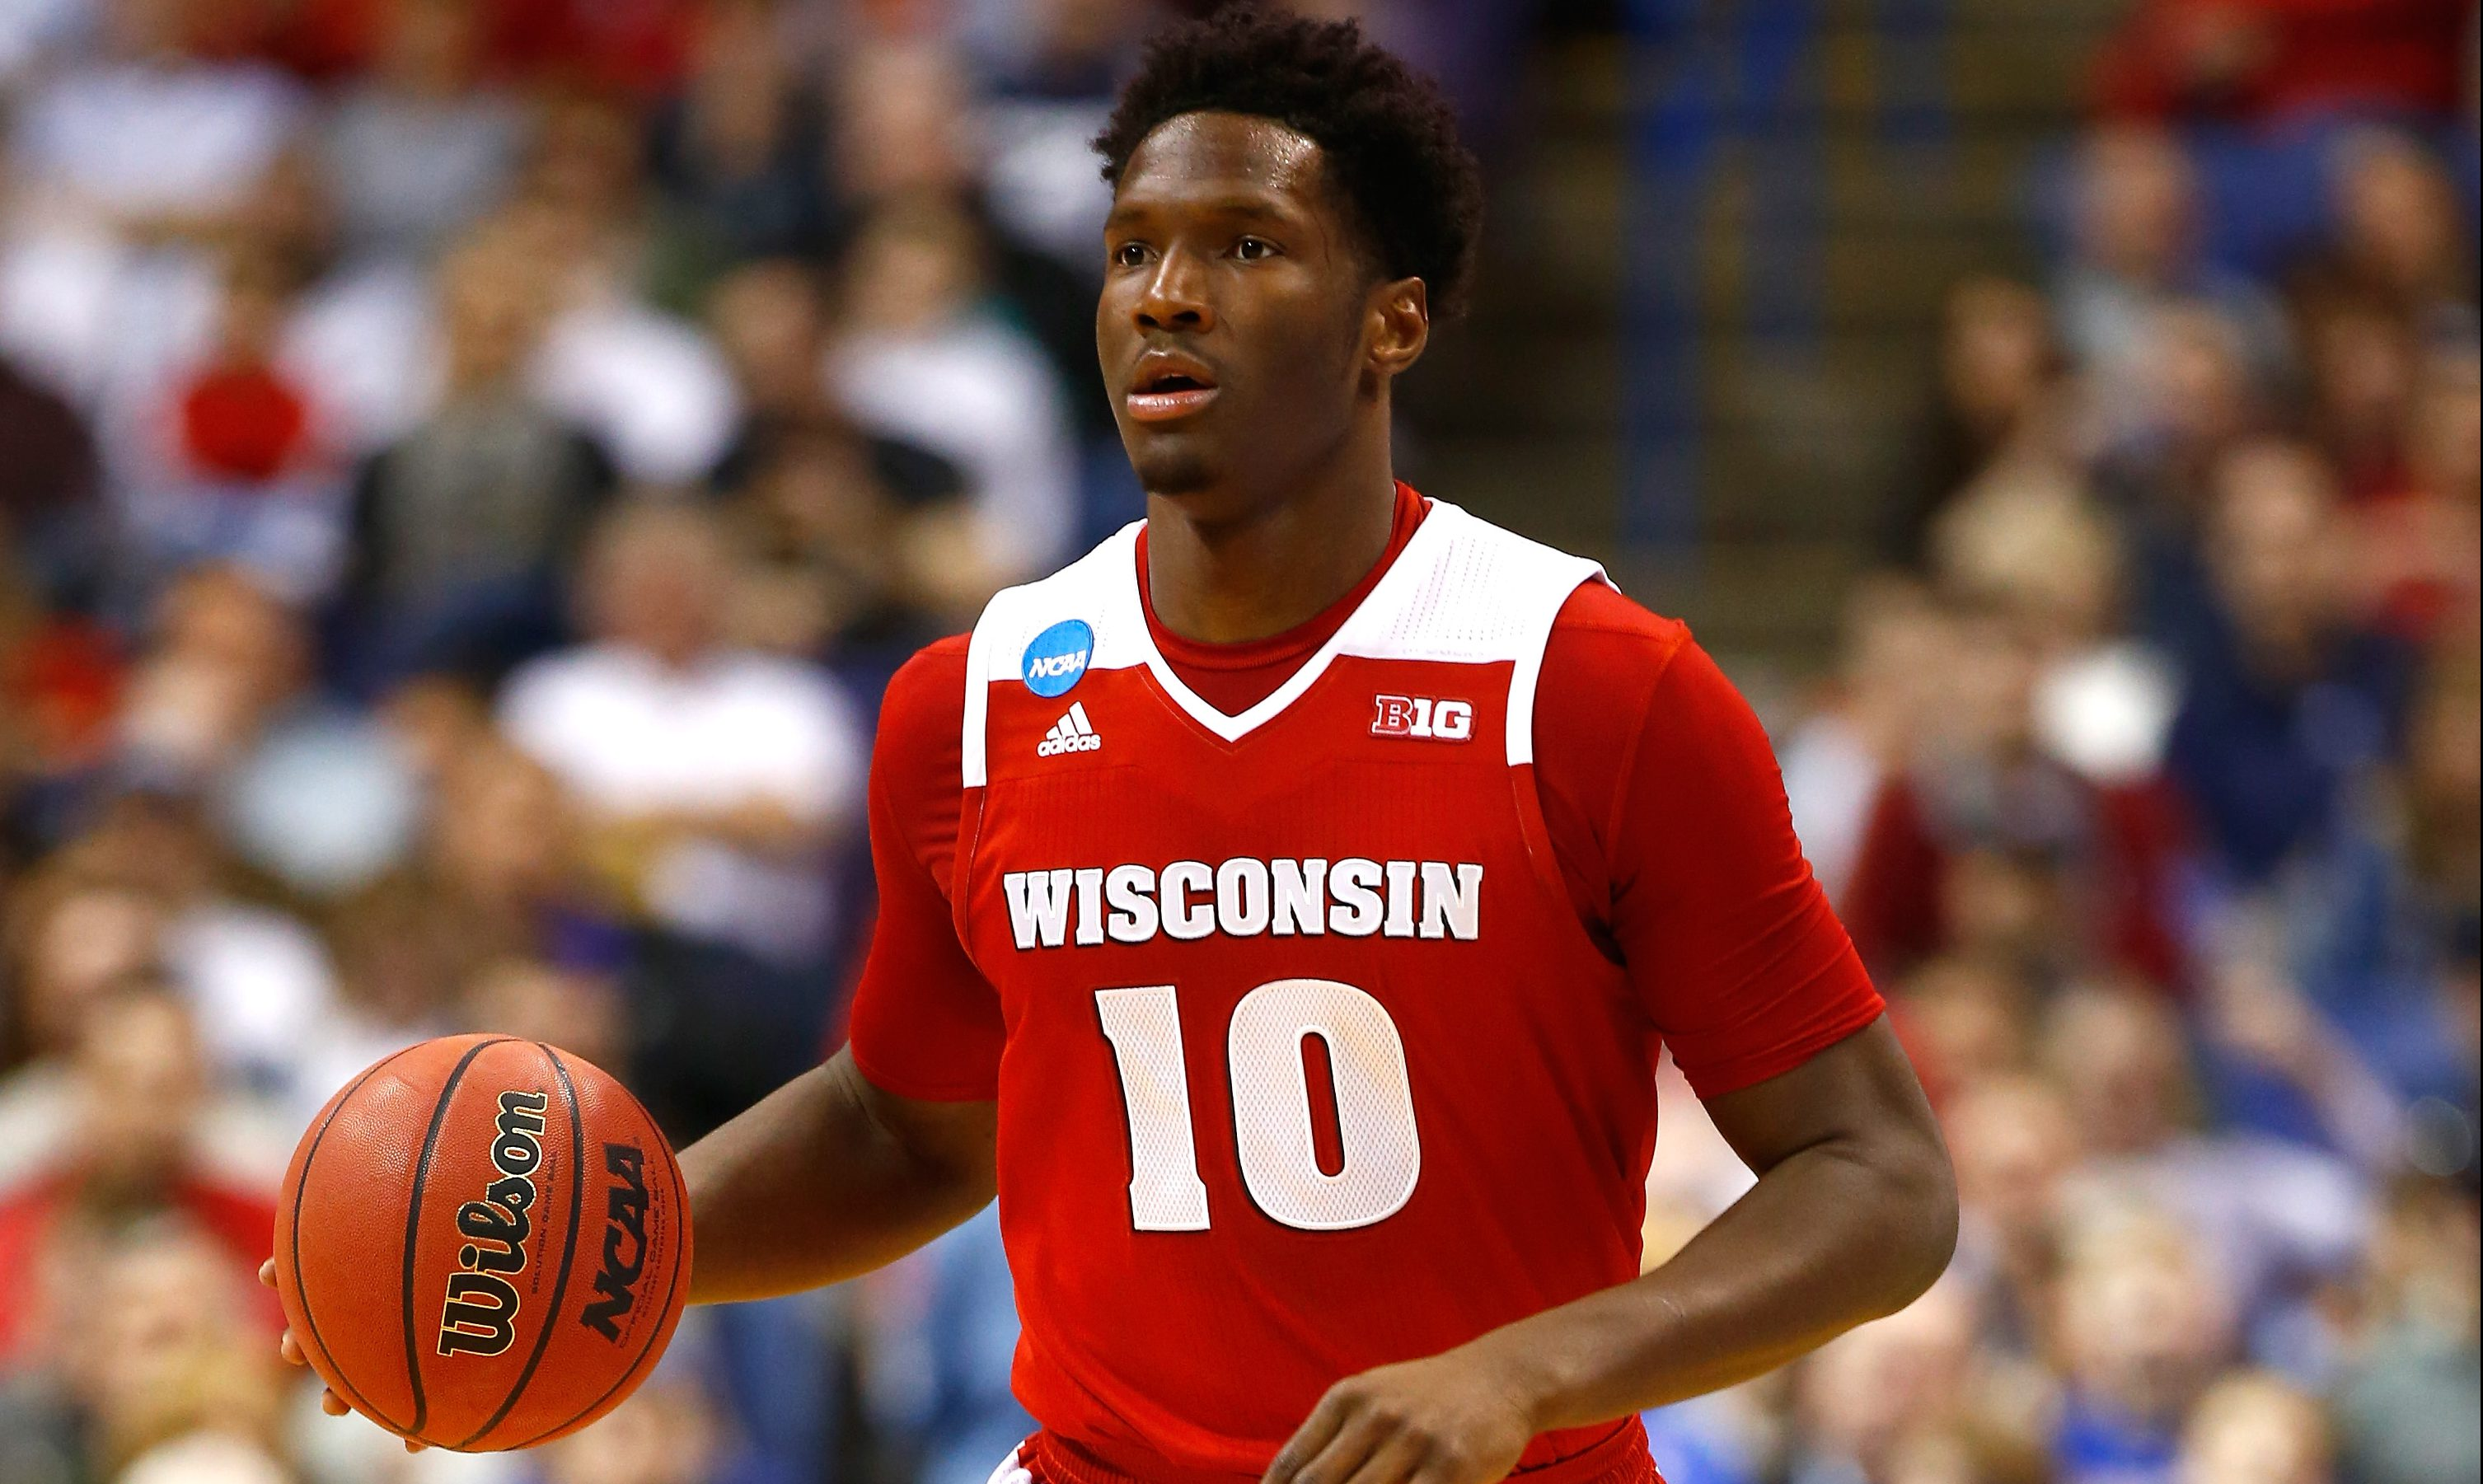 PHOTO: Wisconsin's Nigel Hayes, Jordan Hill protest during